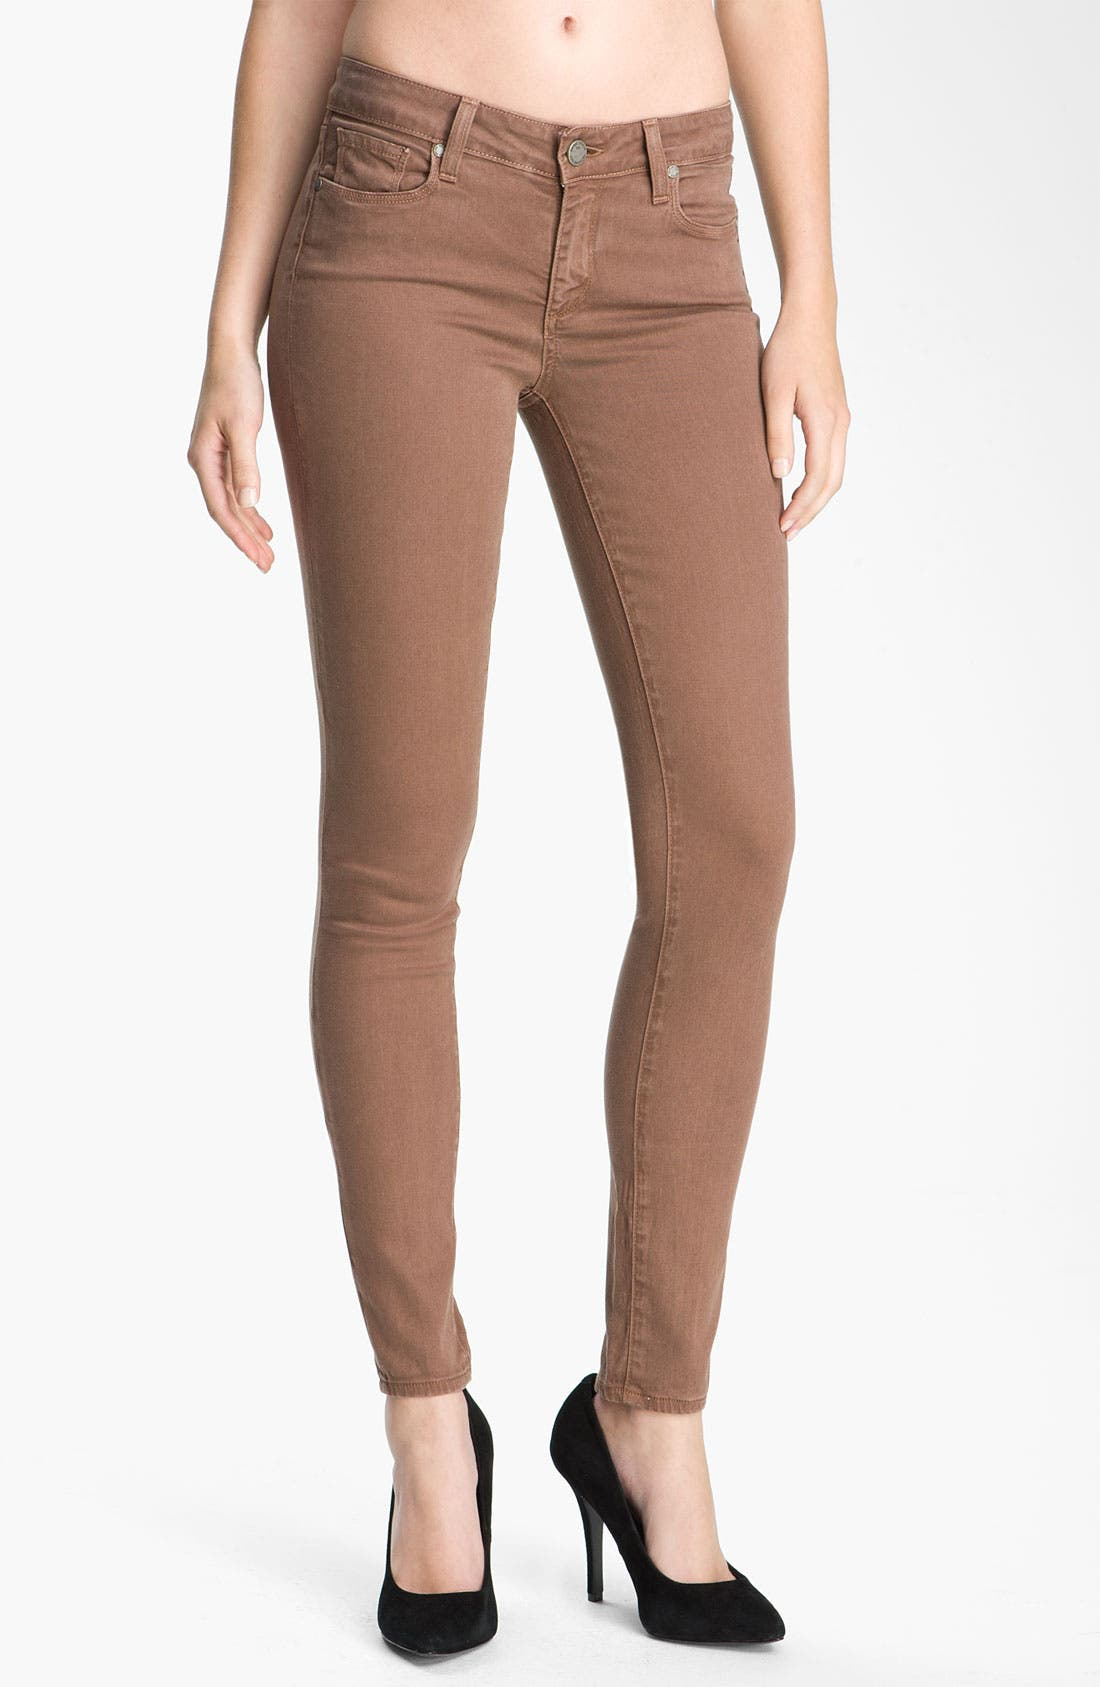 Alternate Image 1 Selected - Paige Denim 'Verdugo' Skinny Stretch Jeans (Rothko)